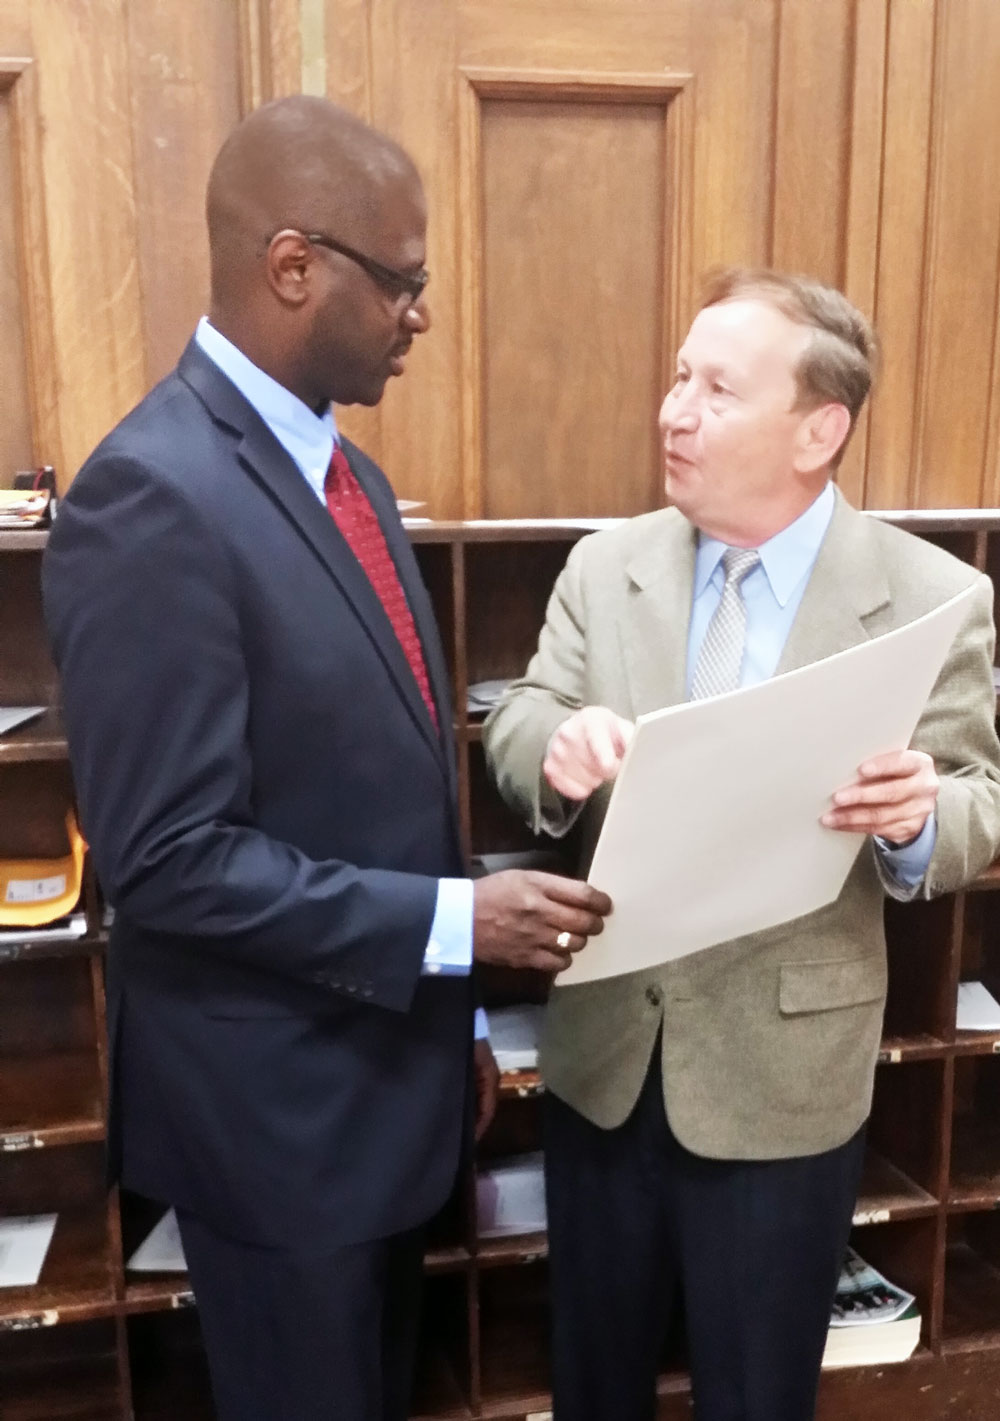 Discussing policy with fellow Alderman Stephen Conway